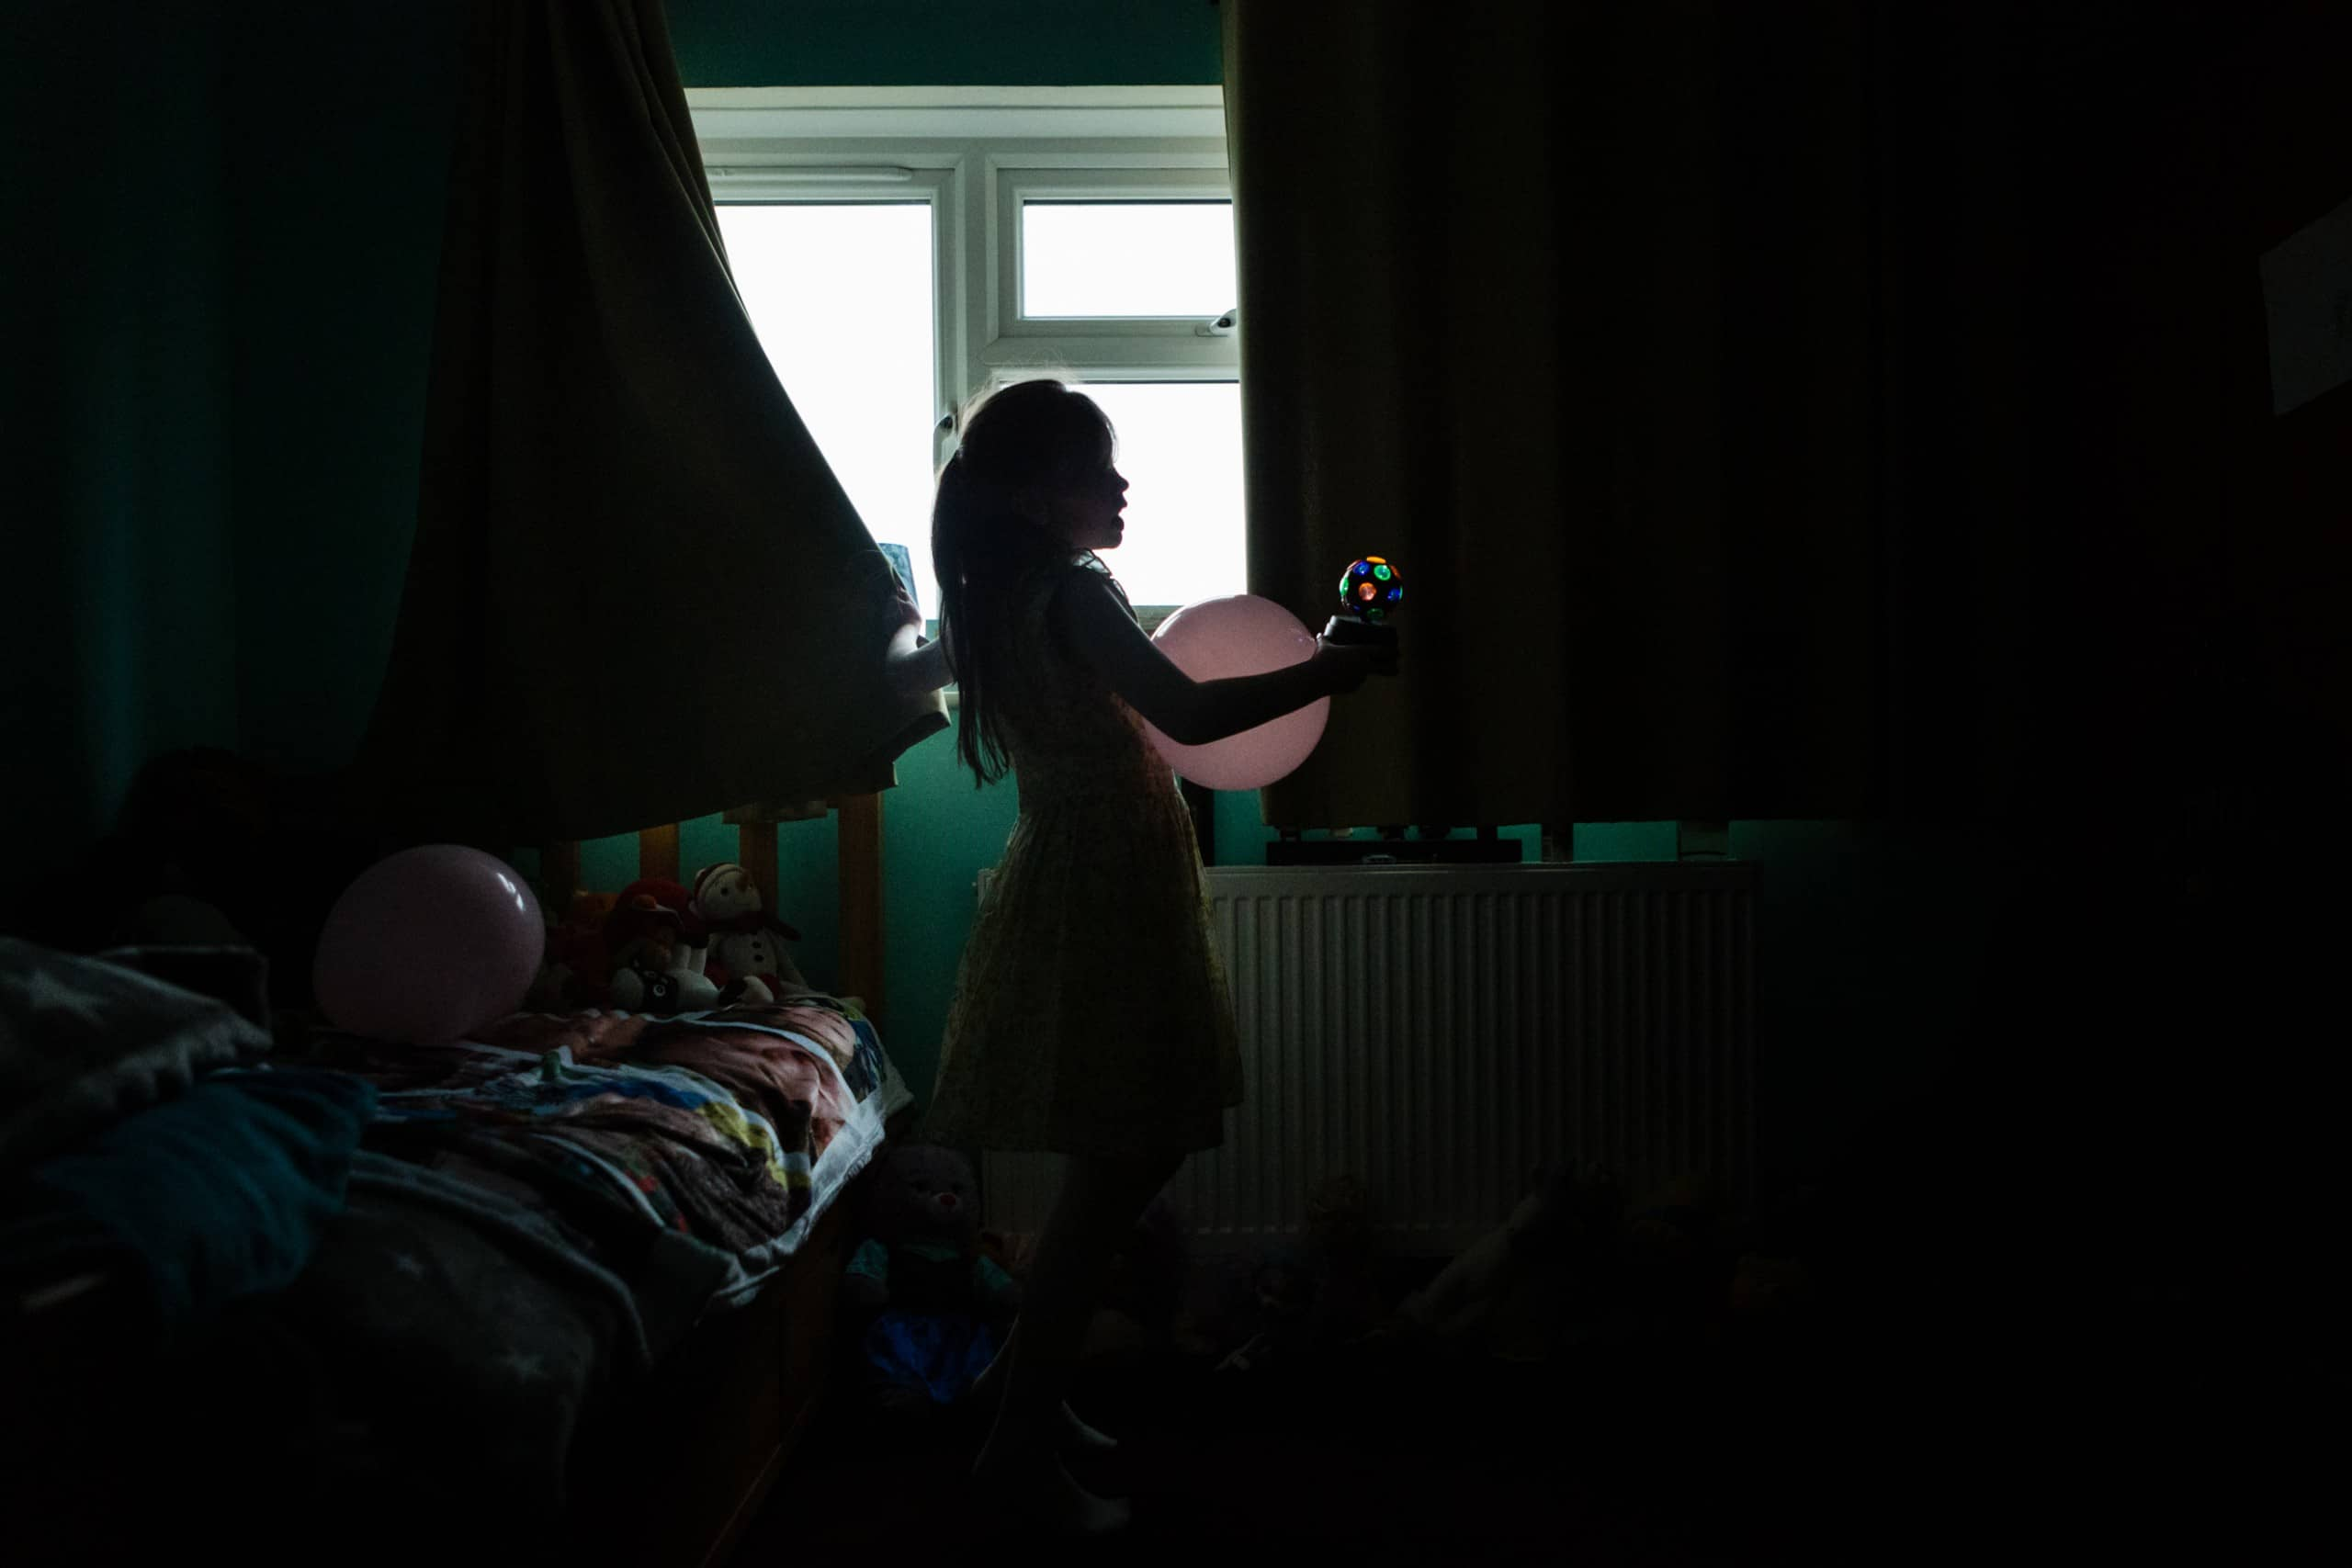 holding a toy coloured light